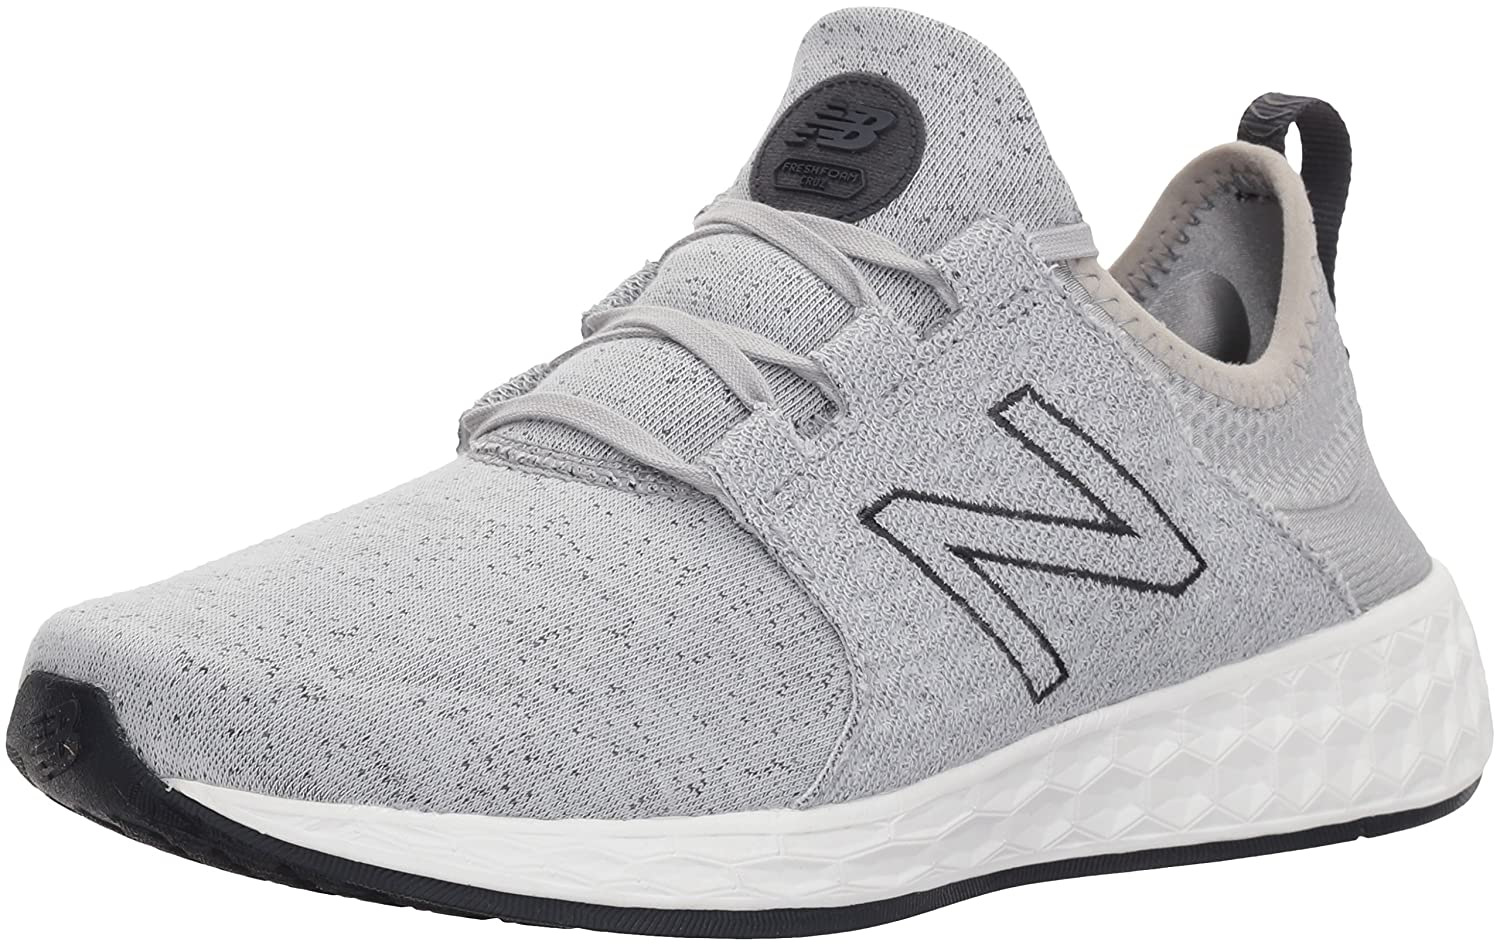 New Balance Women's Fresh Foam Cruz V1 Retro Hoodie Running Shoe B06XSCBFG2 9.5 B(M) US|Silver Mink/Outerspace